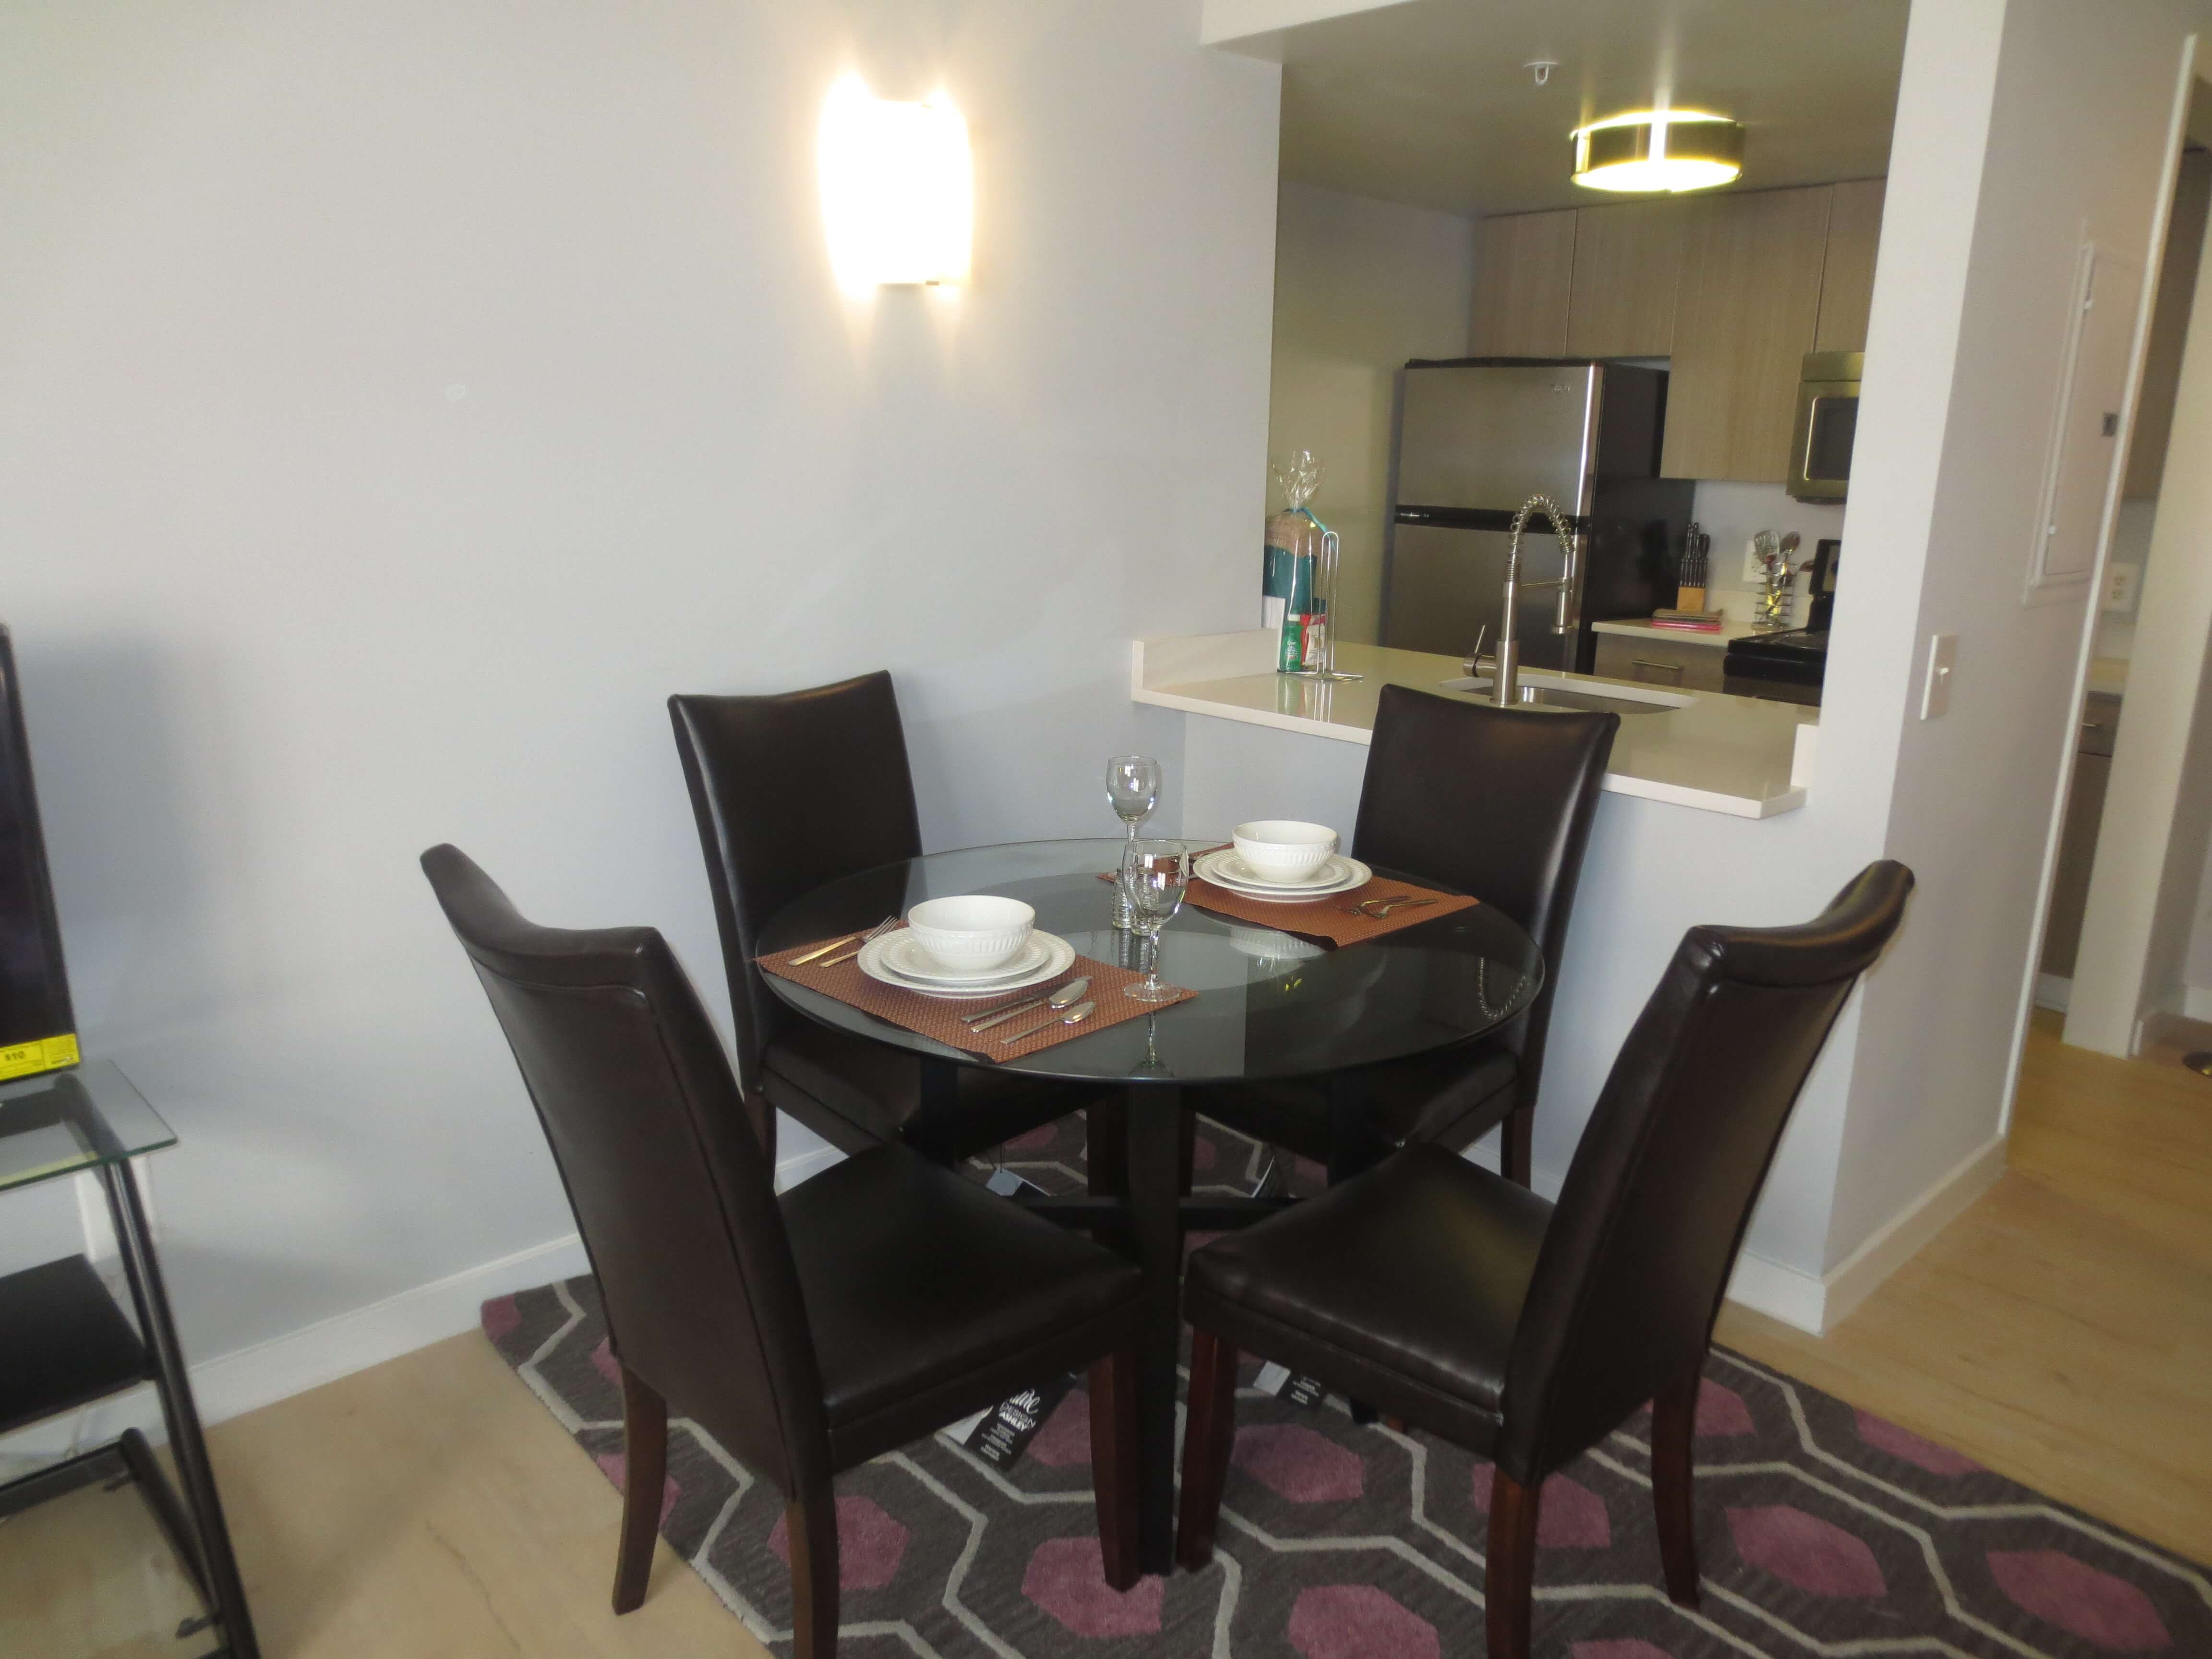 image 5 furnished 1 bedroom Apartment for rent in Morristown, Morris County